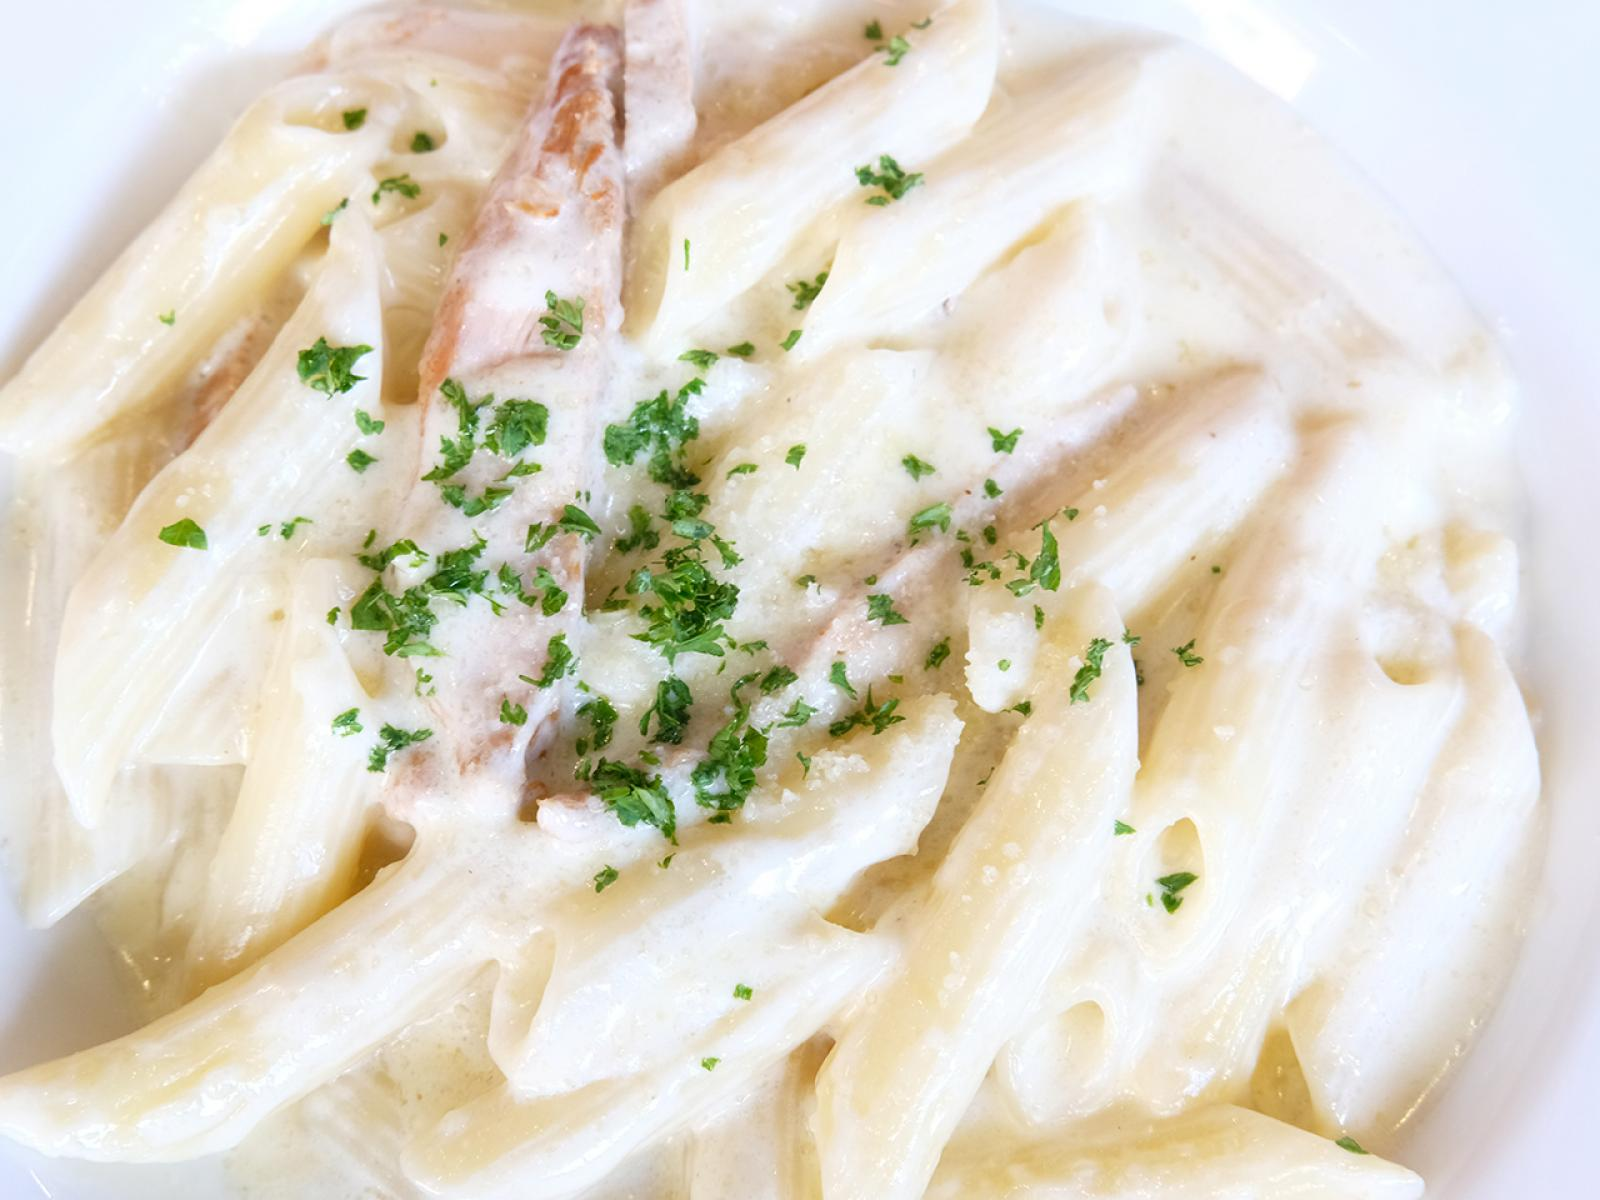 Smooth and Creamy Pasta Sauce